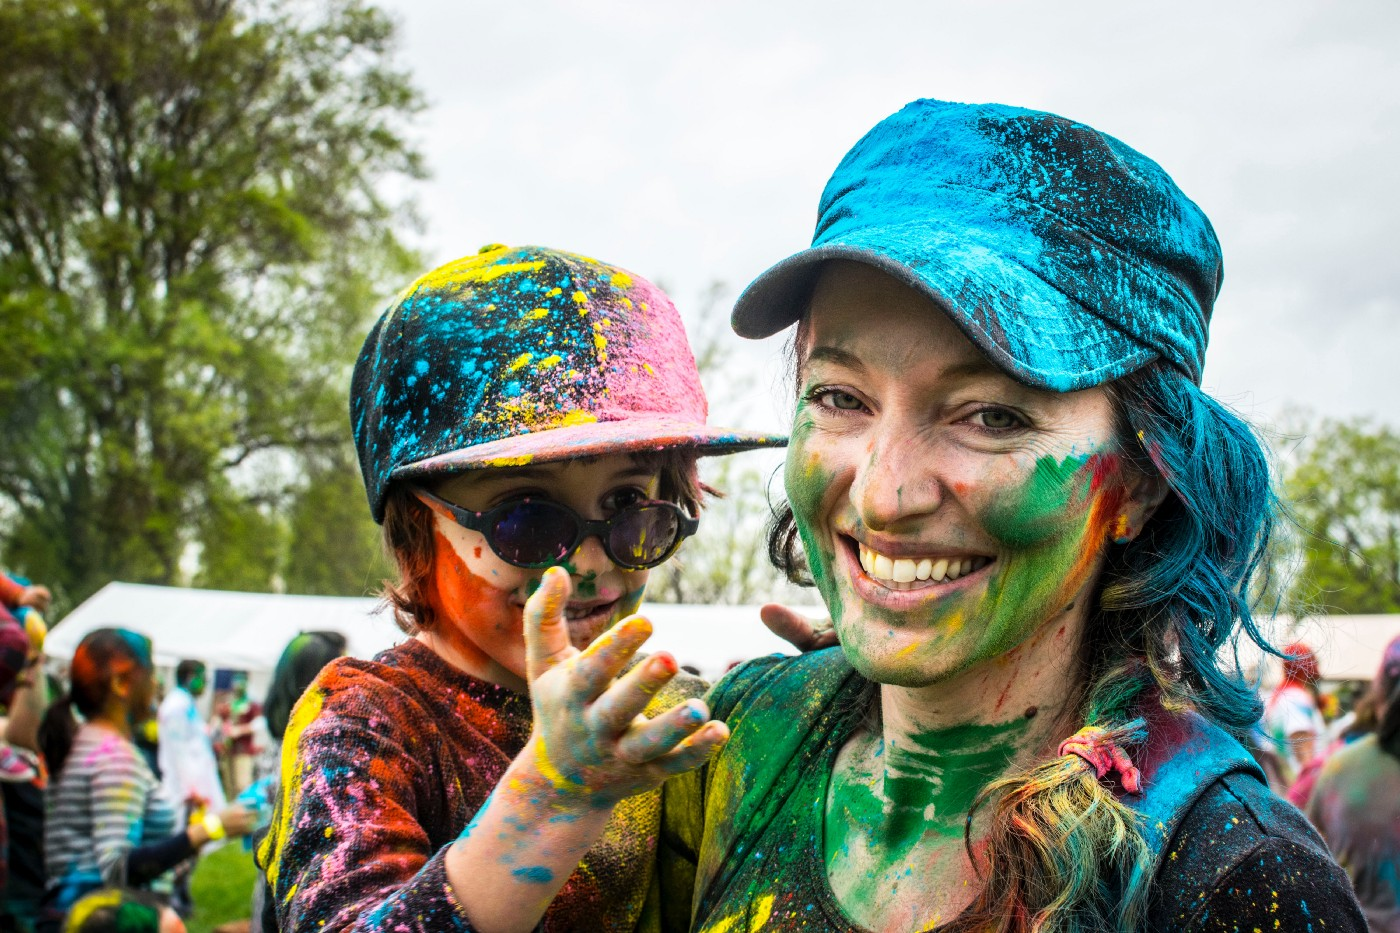 Smiling woman holding boy with outreached hand after both ran through colored paint.